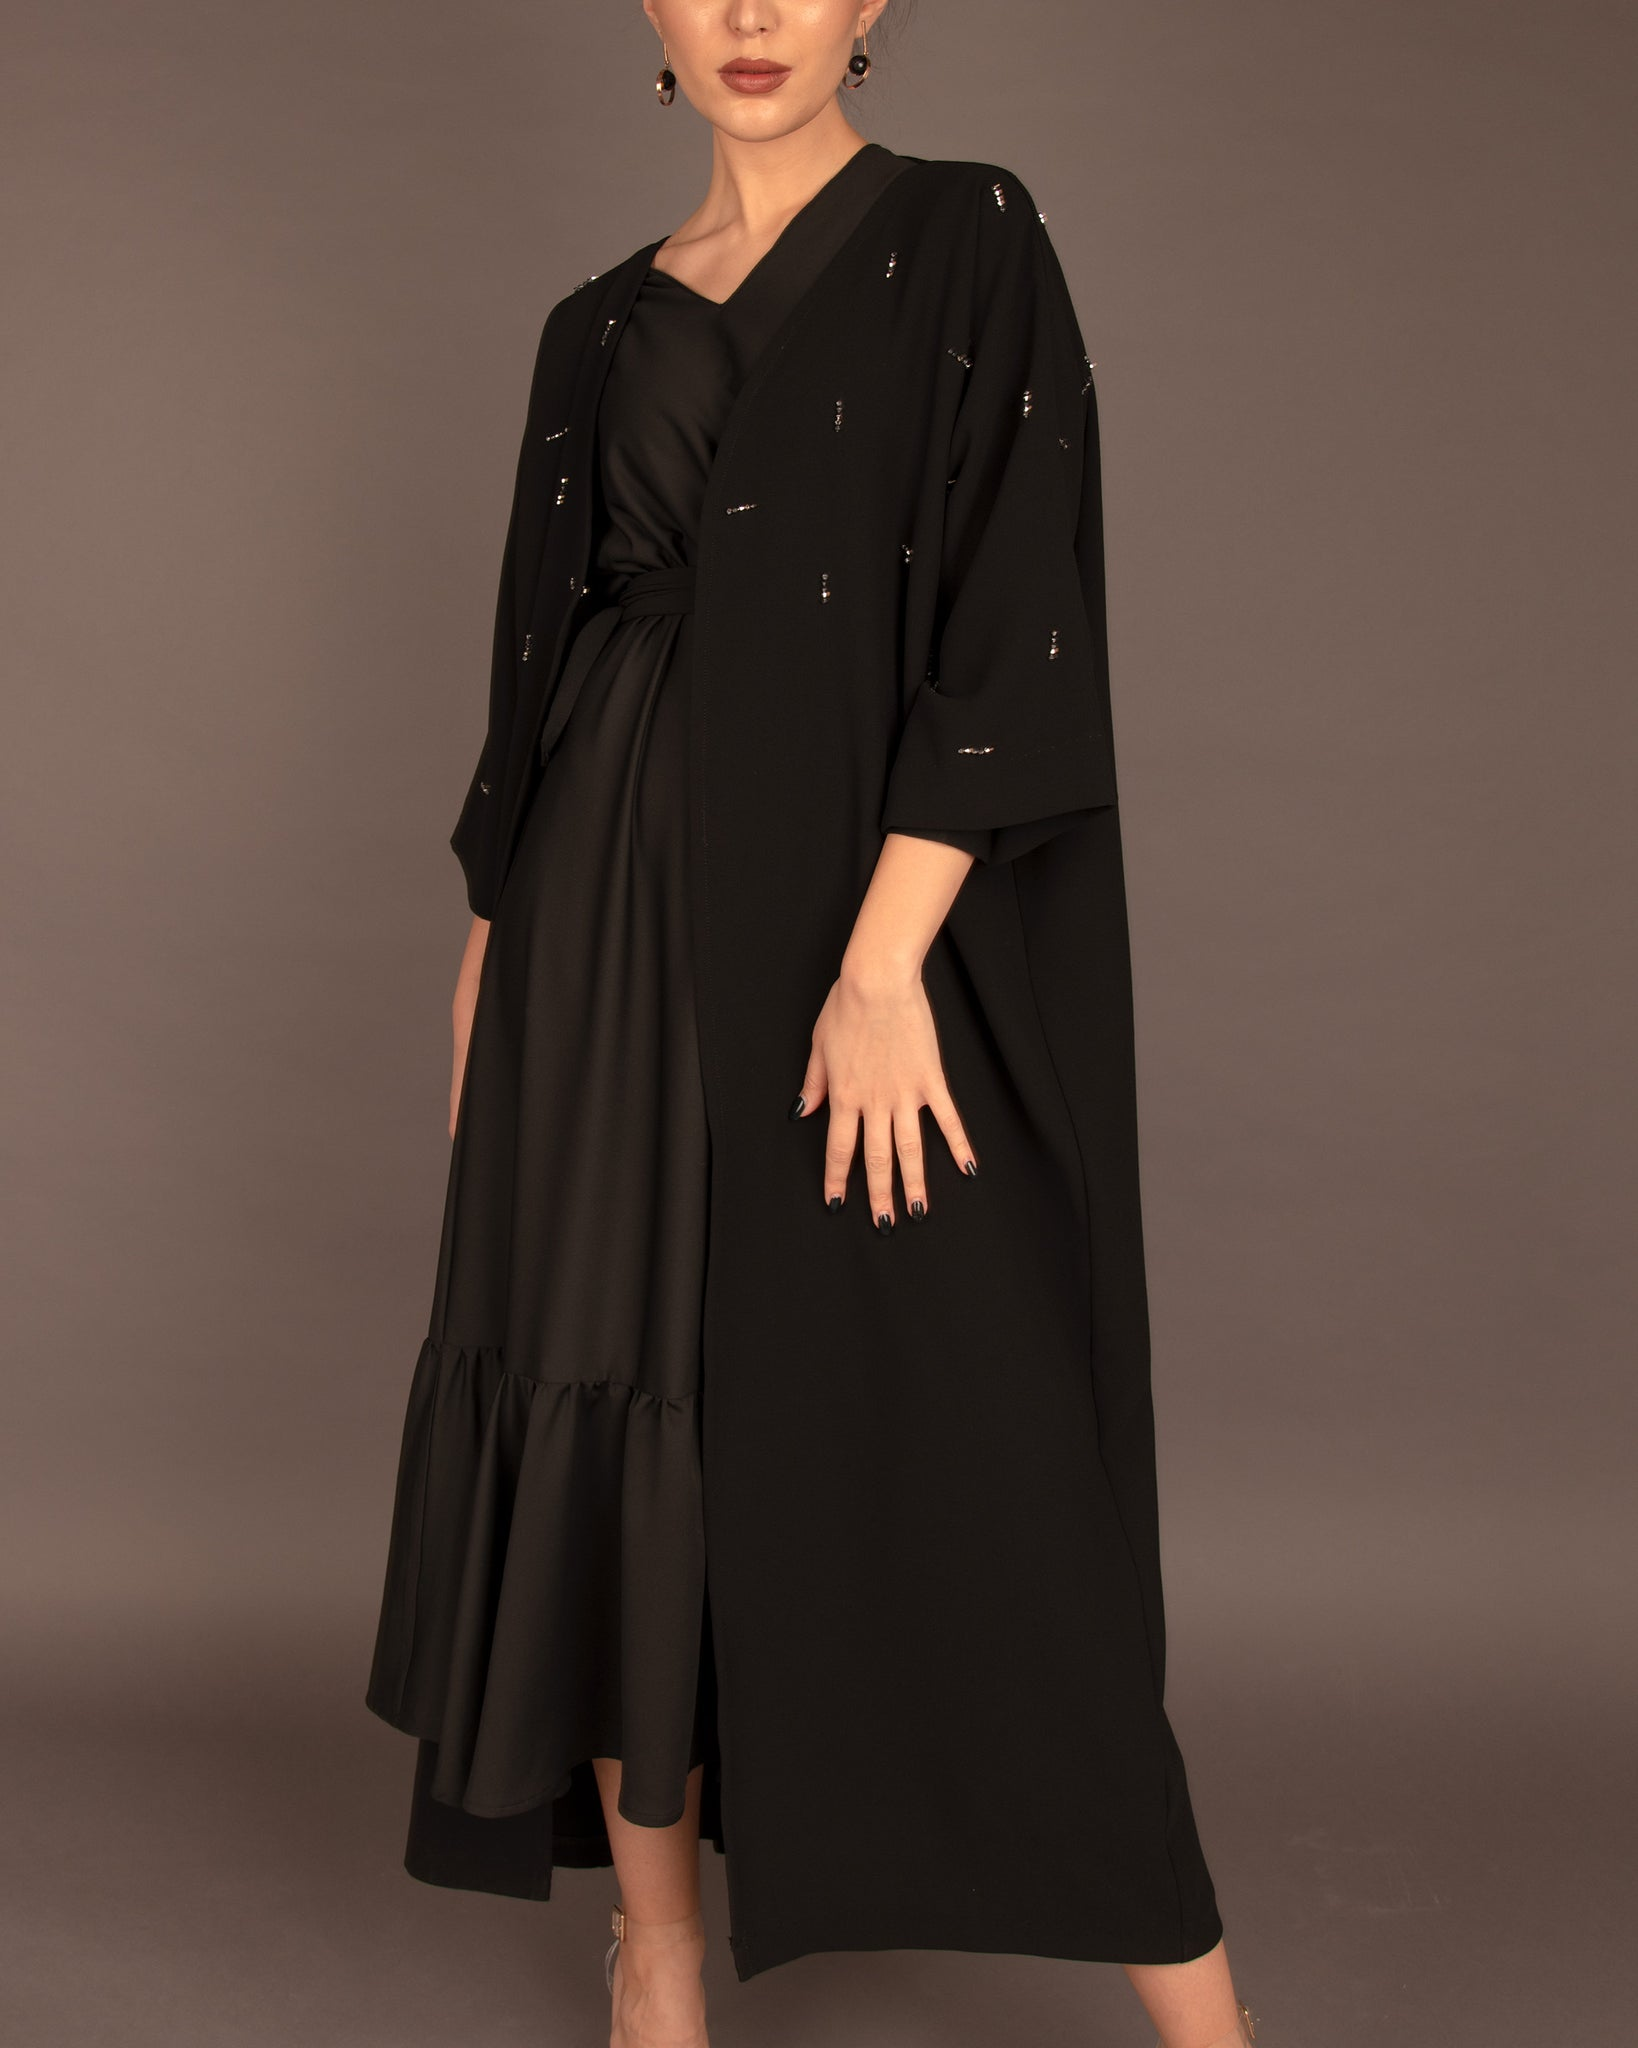 The Ruffle Abayah Black